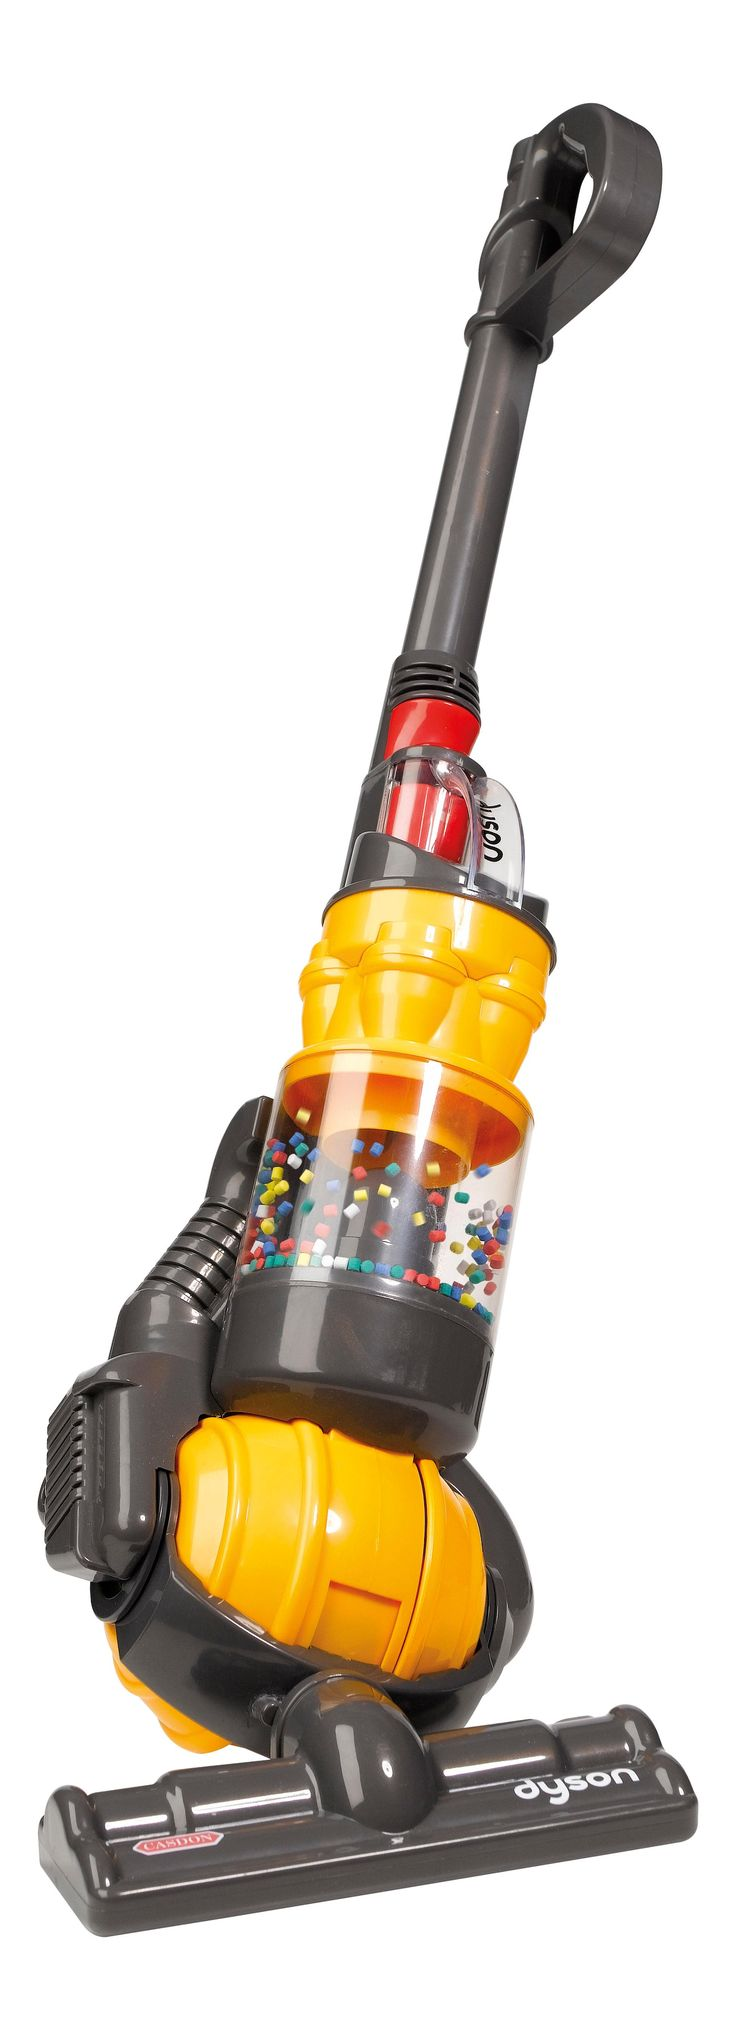 Amazon.com: Toy Vacuum- Dyson Ball Vacuum With Real Suction and Sounds: Toys & Games